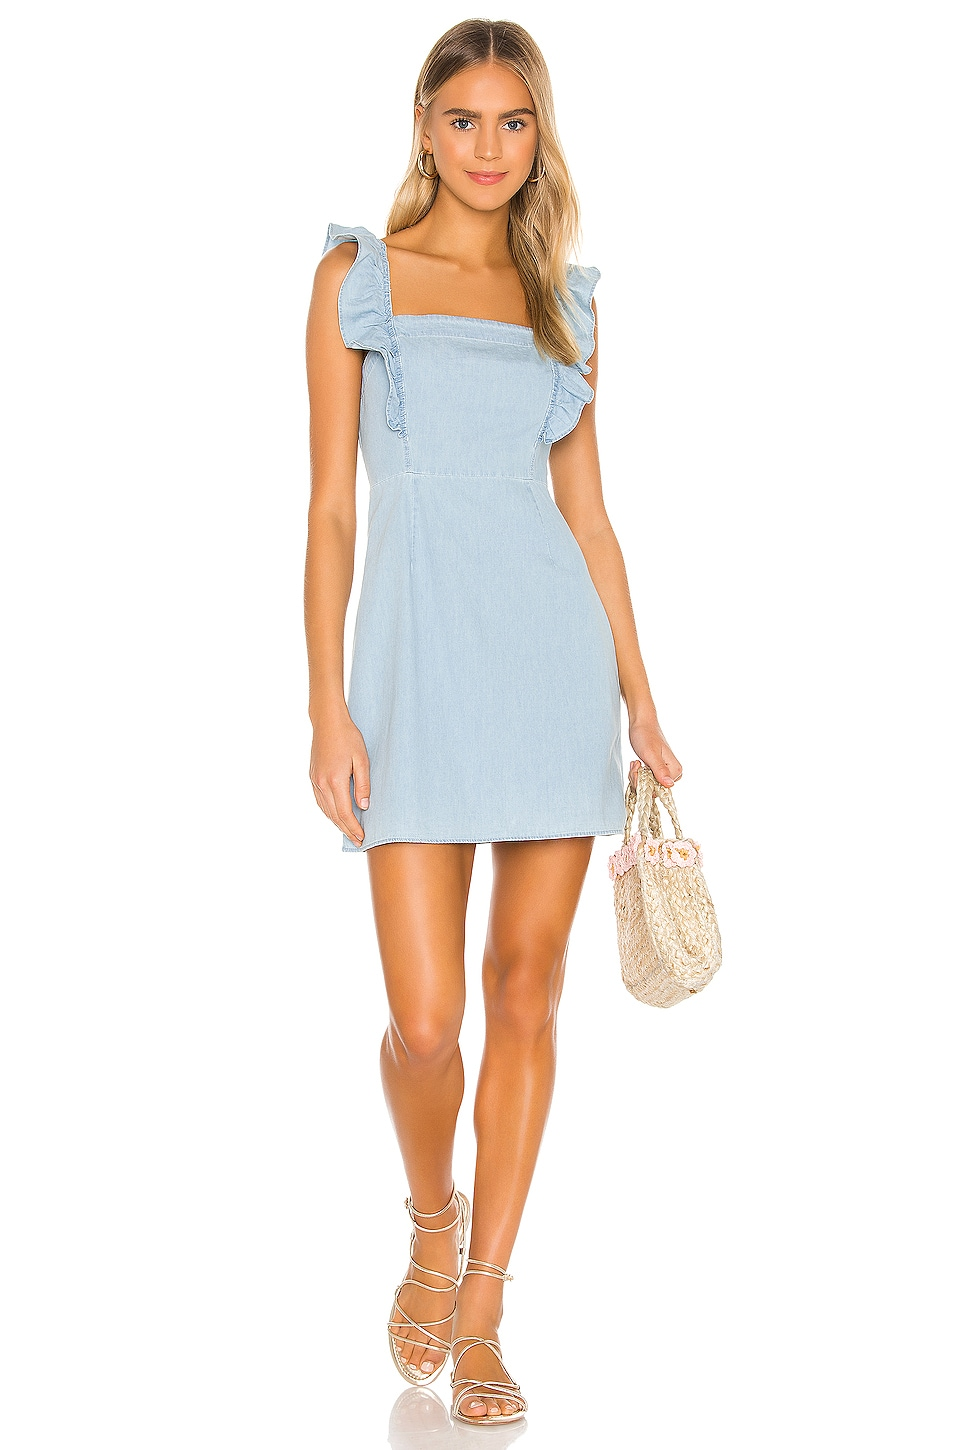 JACK by BB Dakota Chambray All Day Dress             BB Dakota                                                                                                       CA$ 108.89 4